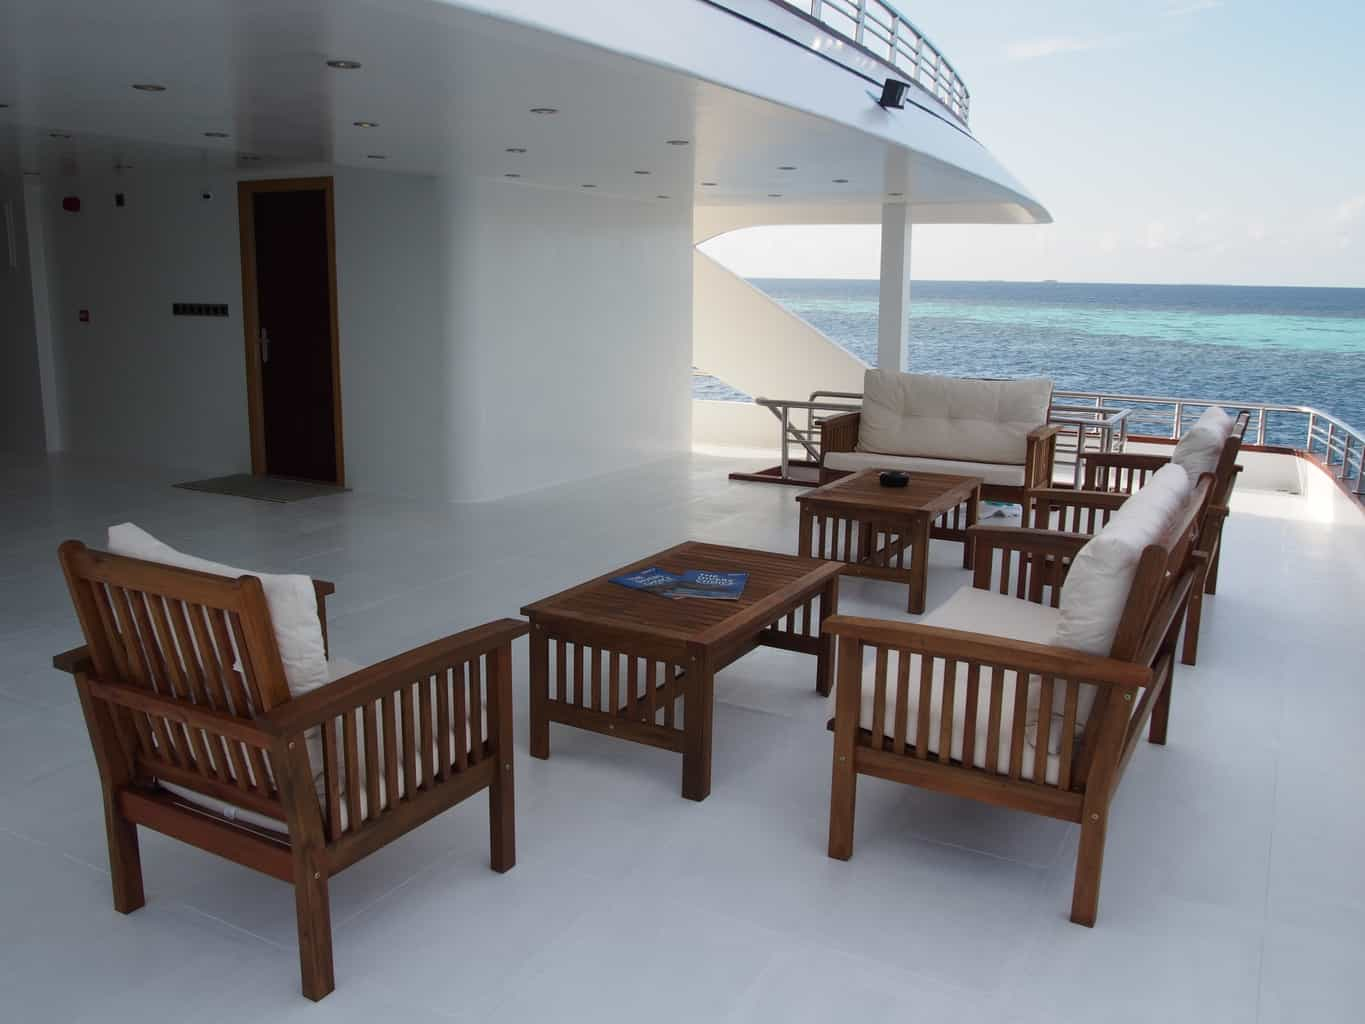 Maldives Liveaboard Holidays Emperor Serenity Deck and relaxing area